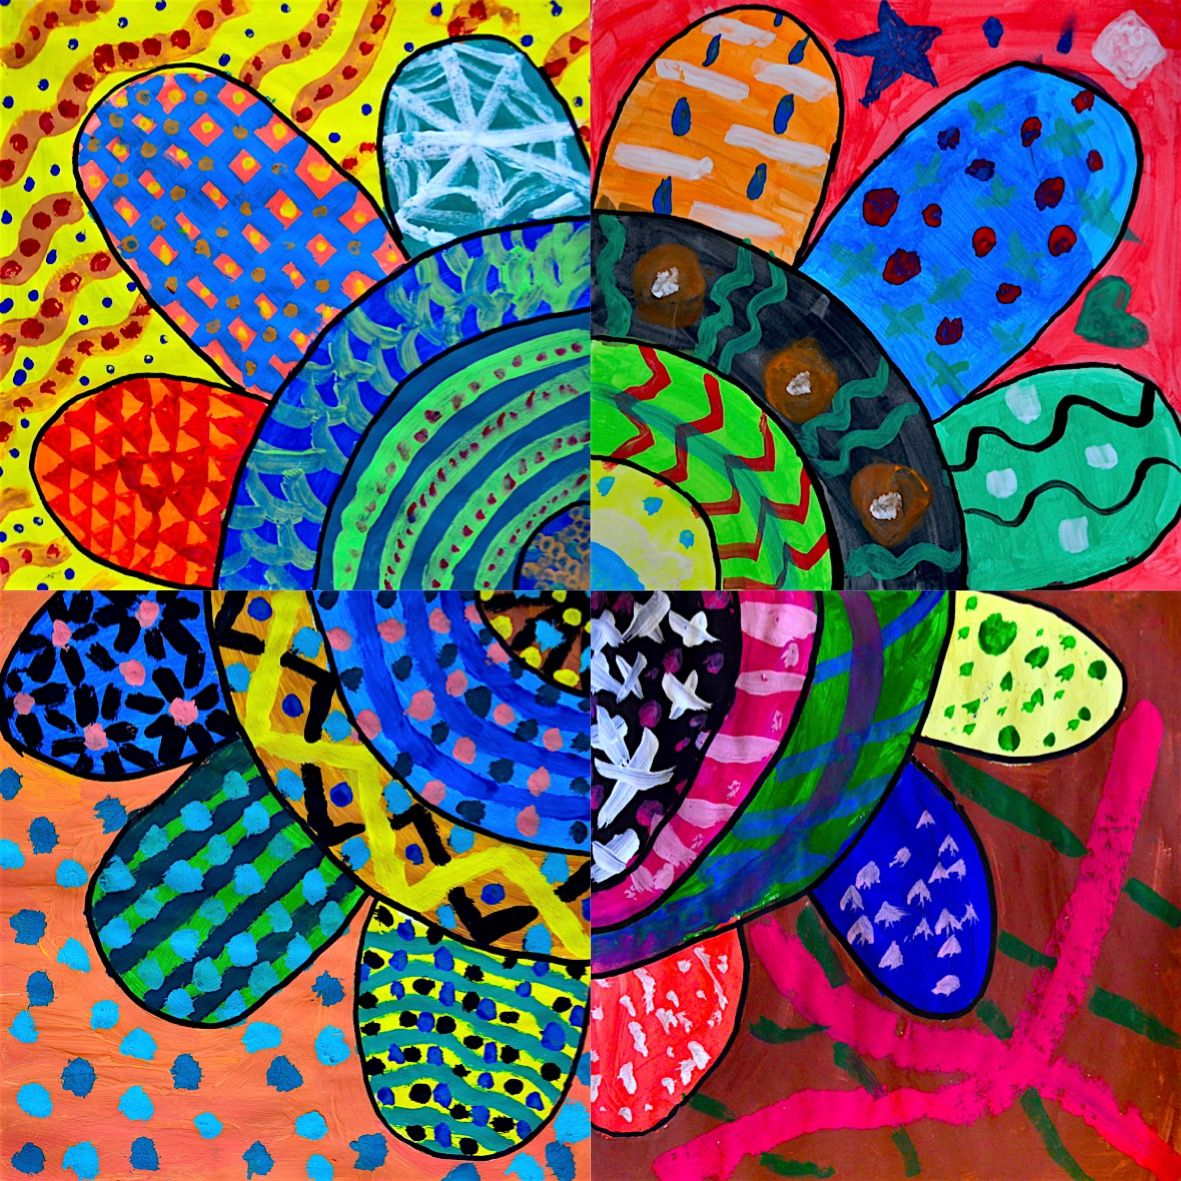 Working on the textures we painted these flowers with the 6th grade students. We practiced lots of different textures, using tempera painting with different tools, as small, large, flat and round p…